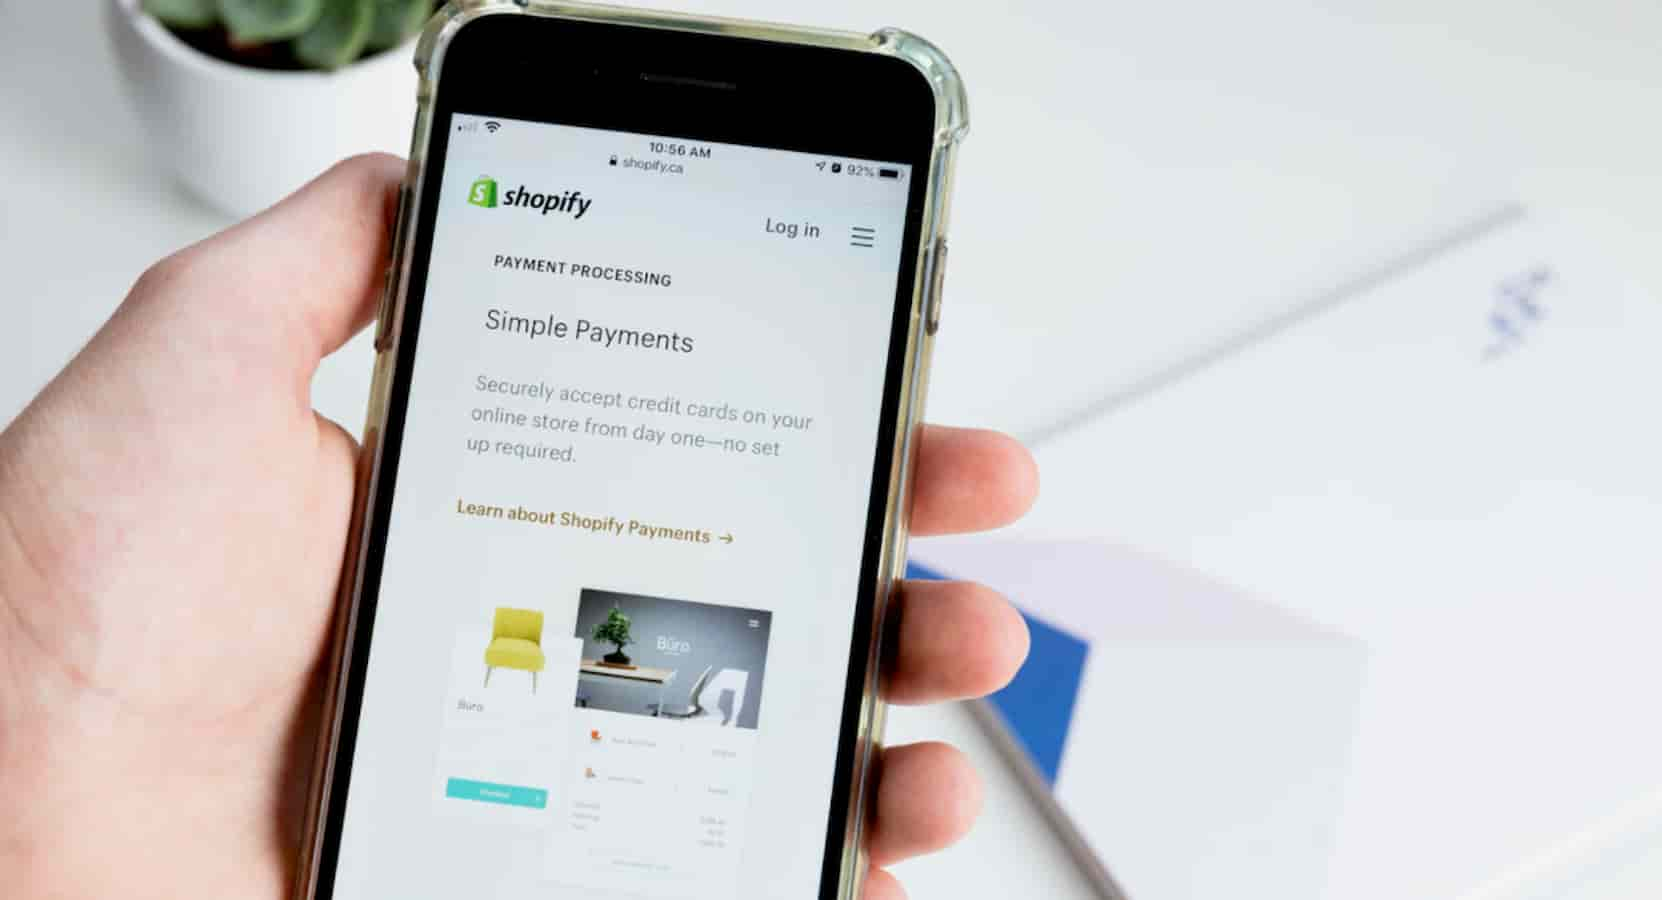 shopify store on a smartphone